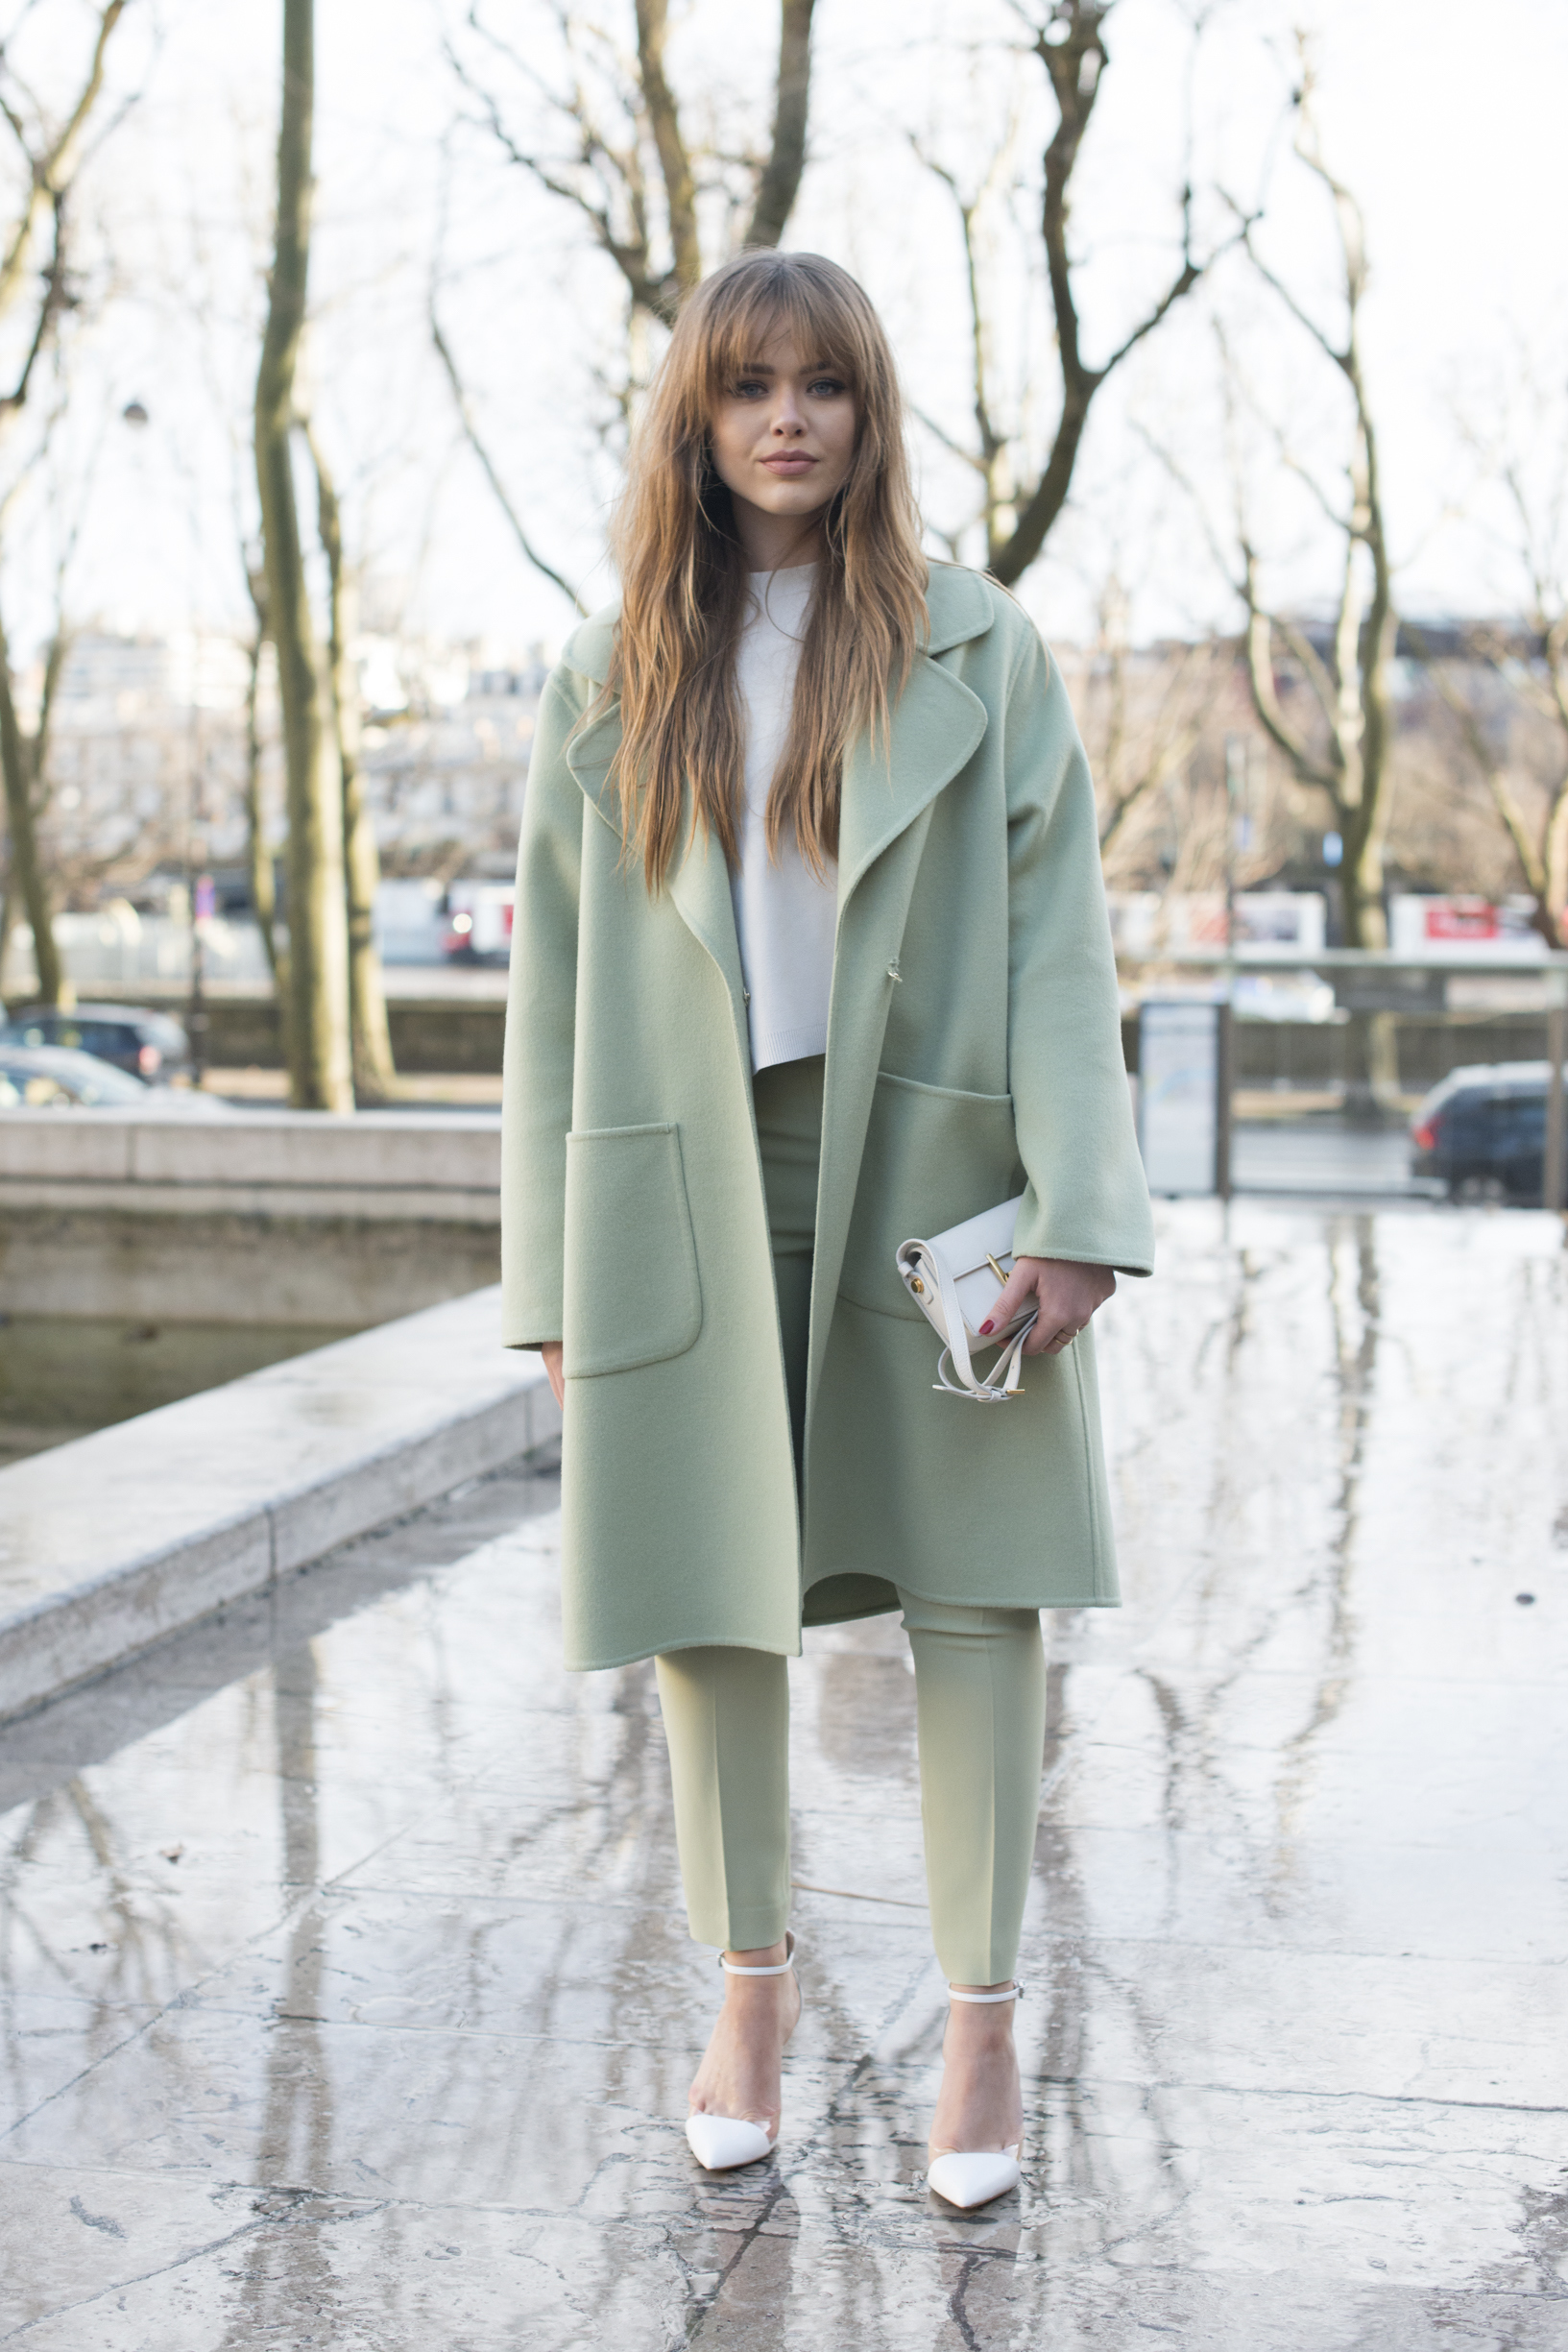 PARIS, FRANCE - MARCH 2: Fashion blogger Kristina Bazan wears Zara shoes, Rochas jacket, trousers and bag on day 2 during Paris Fashion Week Autumn/Winter 2016/17 on March 2, 2016 in Paris, France. (Photo by Kirstin Sinclair/Getty Images)*** Local Caption *** Kristina Bazan